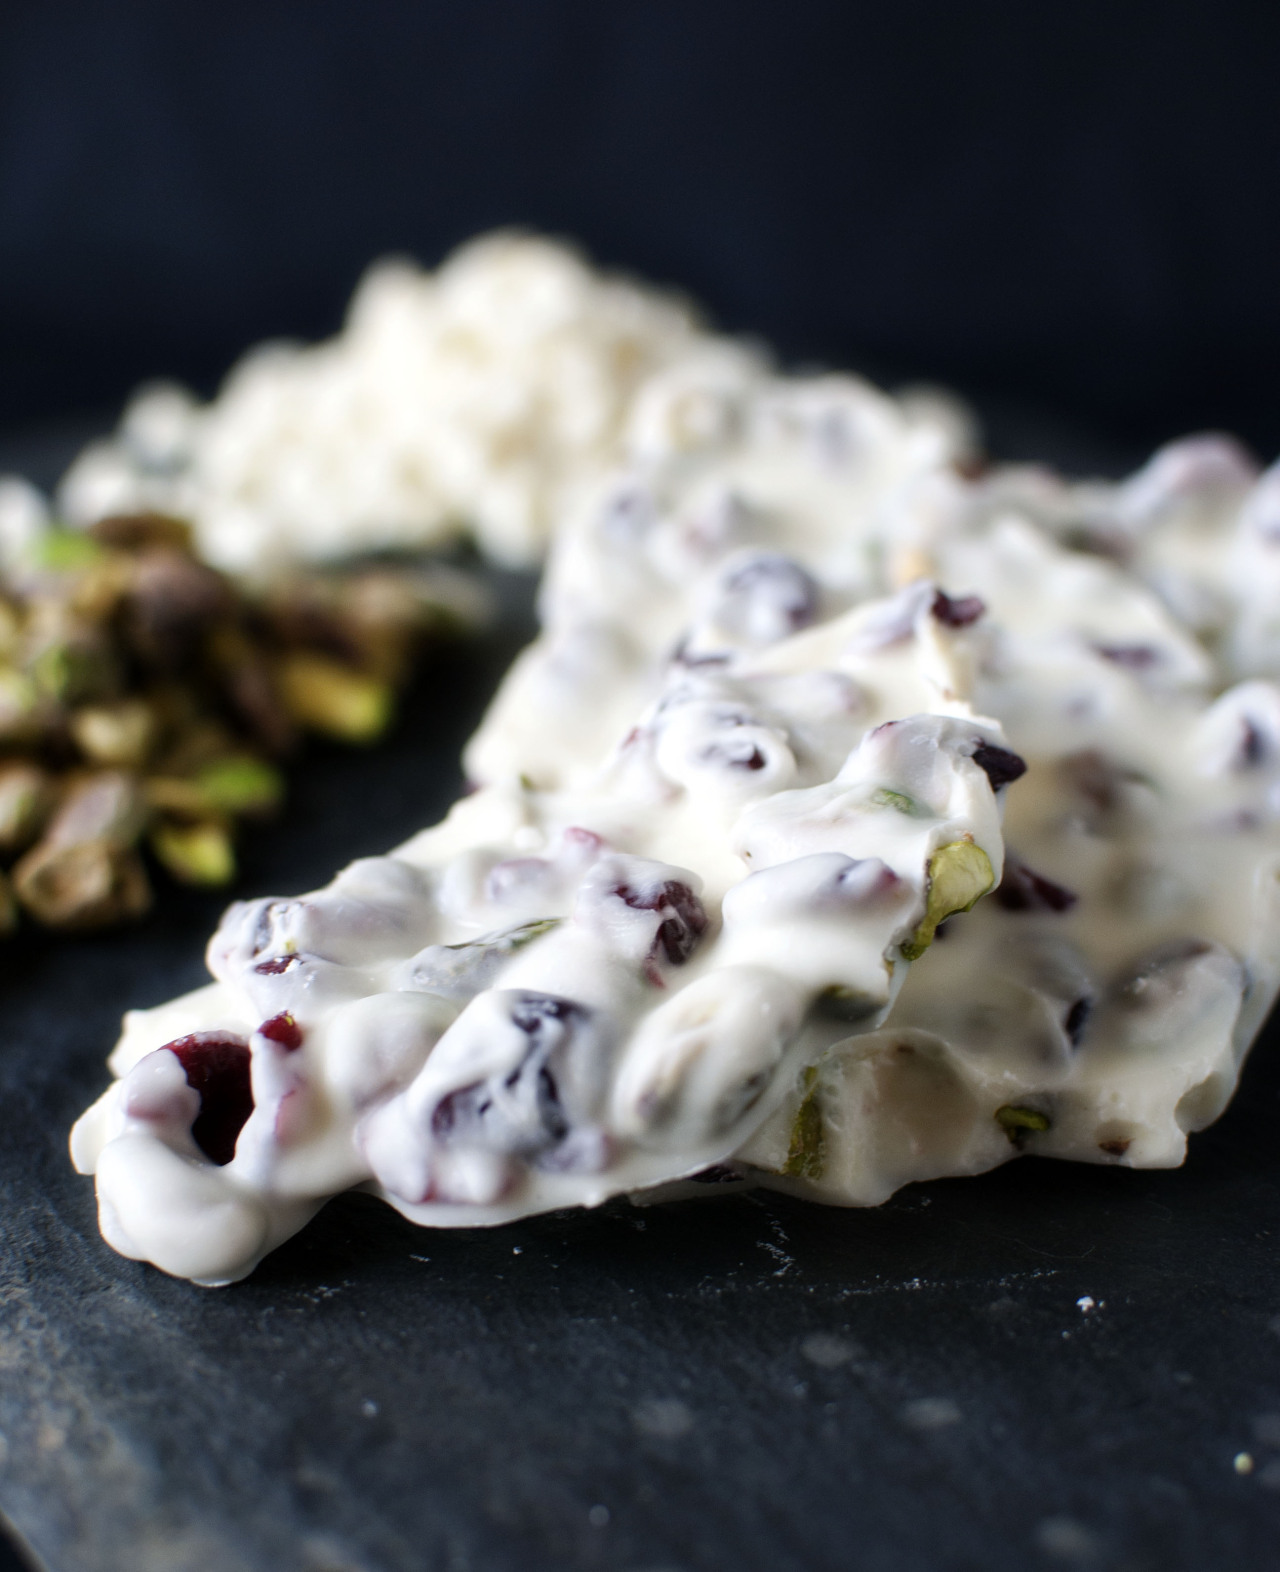 allthatwhitechocolate:  White Chocolate Bark